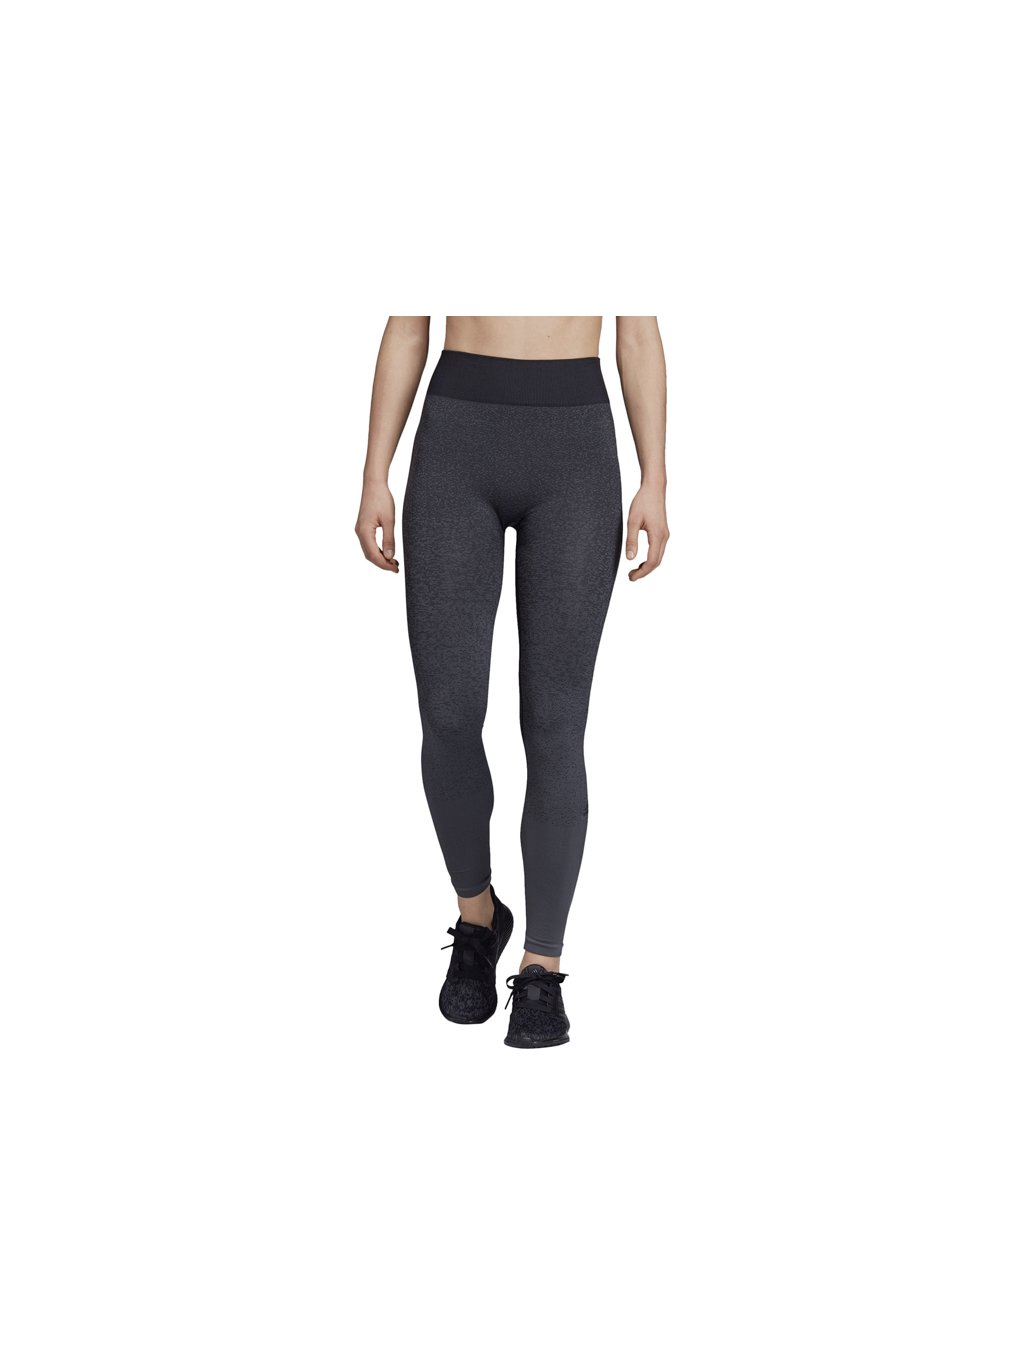 ADIDAS BELIEVE THIS PRIMEKNIT FLW TIGHTS